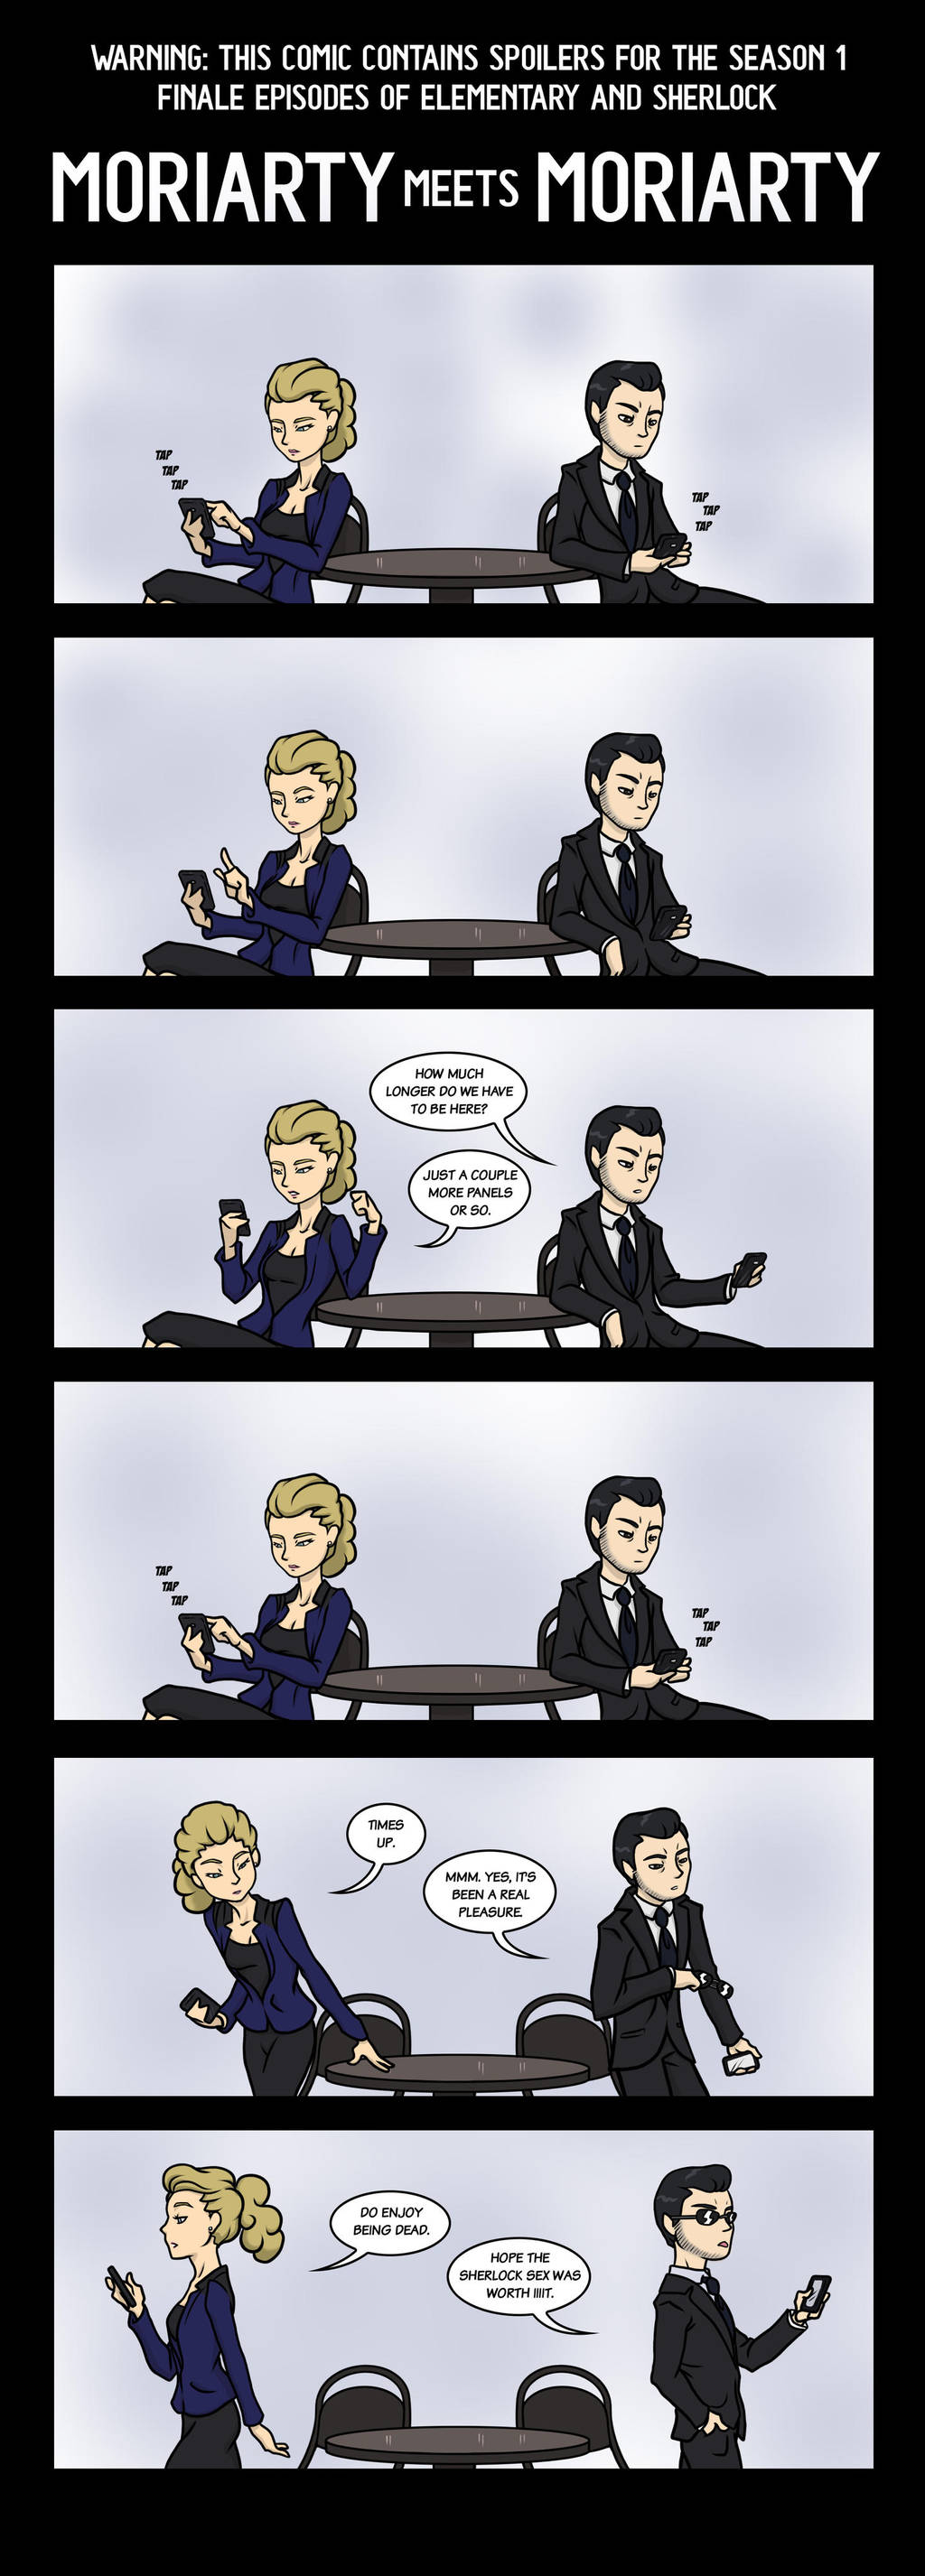 Elementary Sherlock Moriarty Meets Moriarty By Maryfgr23 On Deviantart